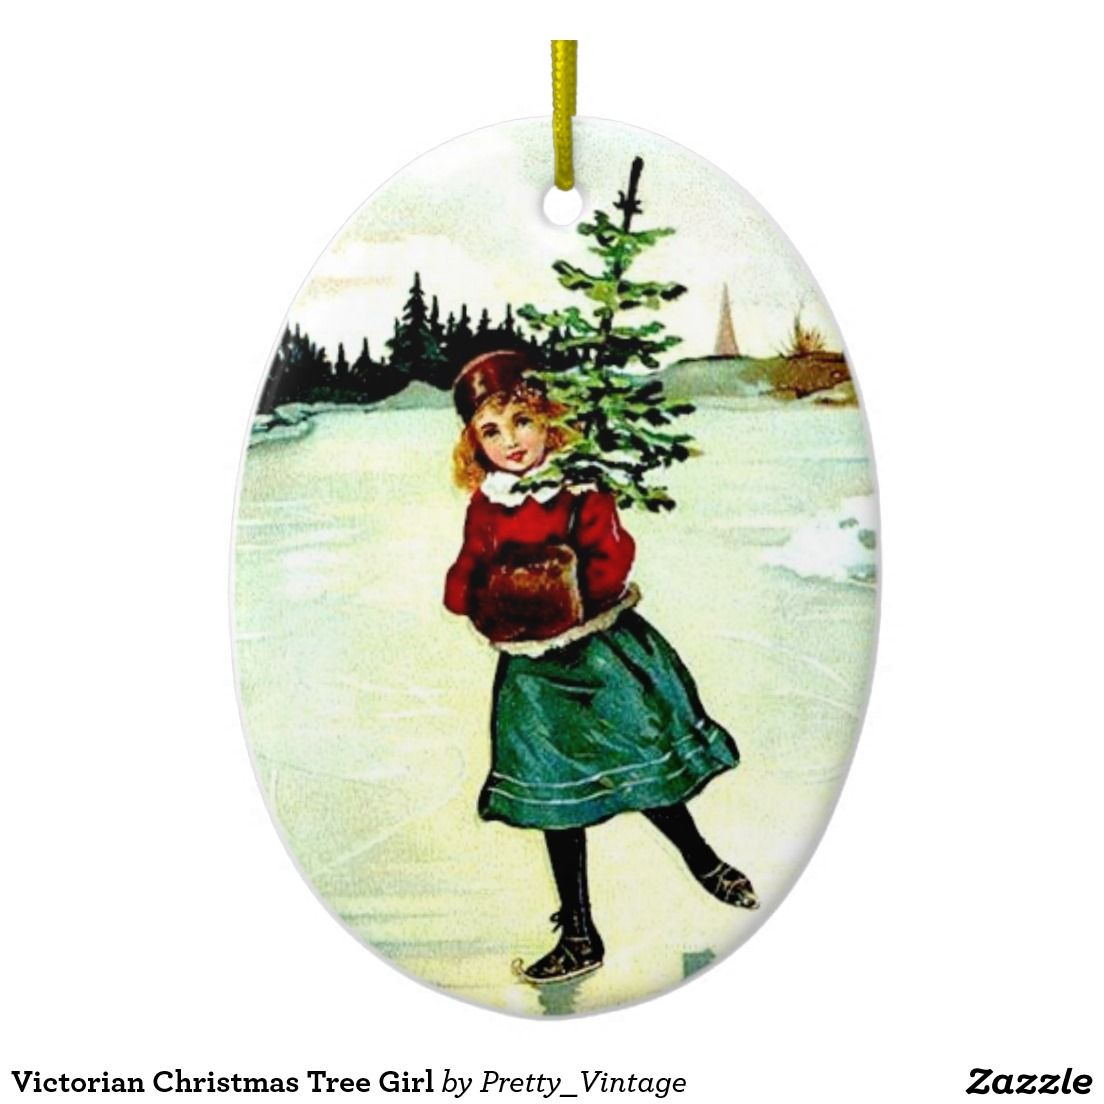 $17.20 per Victorian Christmas Tree Girl ornament. Click the ornament or title for free information about it. 40% off with code CYBRWEEKSALE  (week of 11/29/16) Merry Christmas and Happy New Year! :)